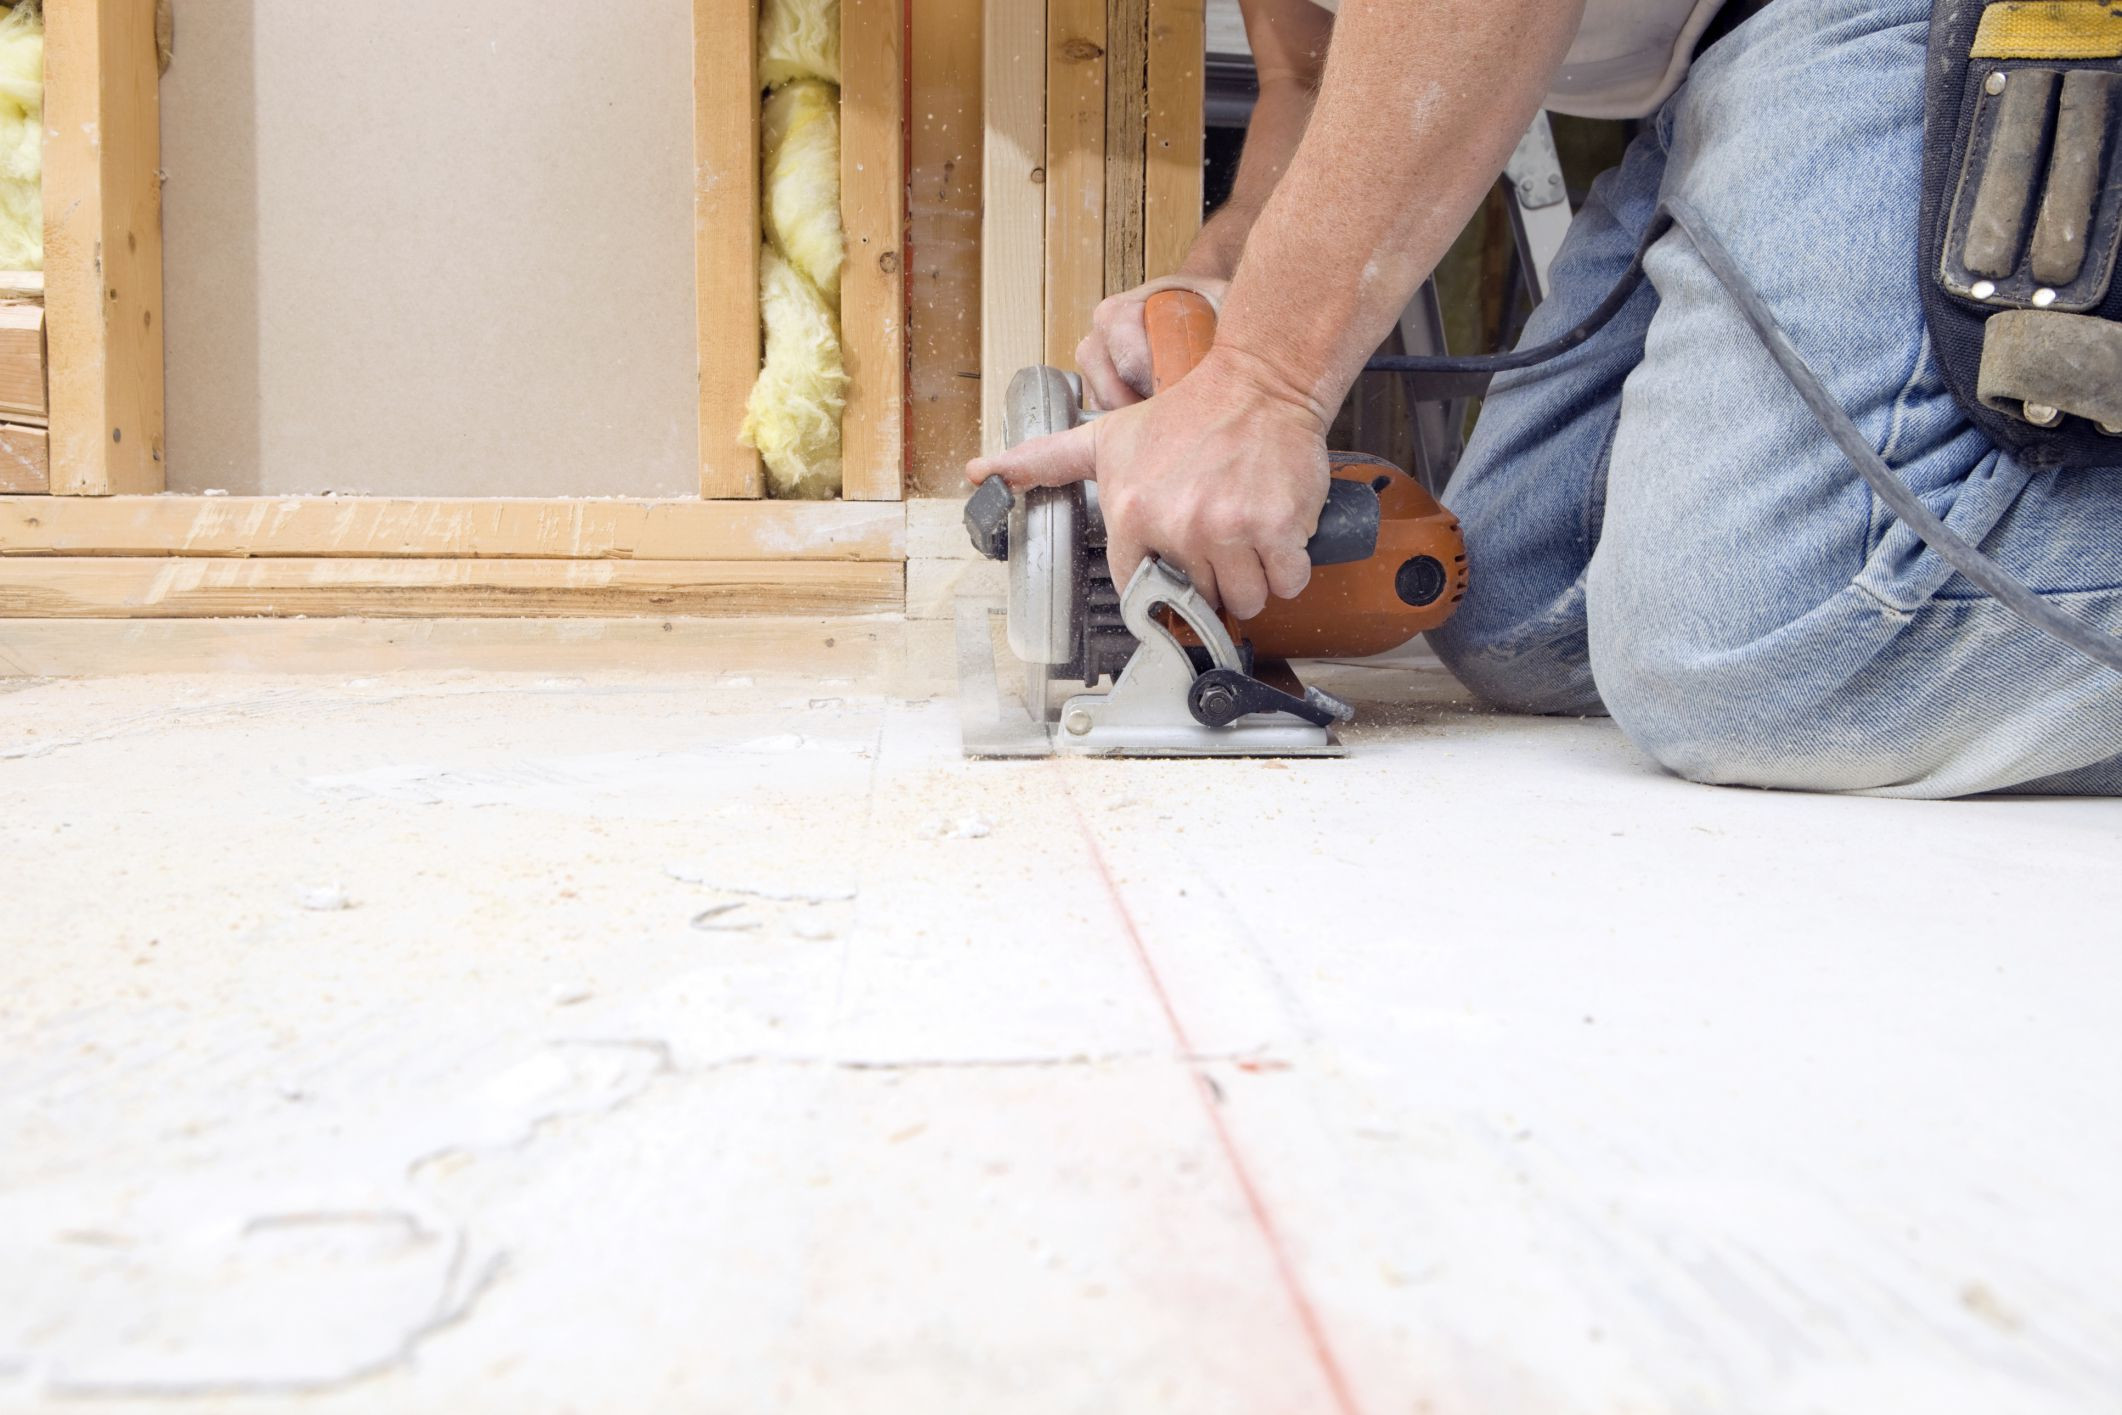 how to glue down hardwood floor to concrete of plywood or osb for flooring regarding cutting plywood subfloor with circular saw 185001220 56a4a04b5f9b58b7d0d7e37f